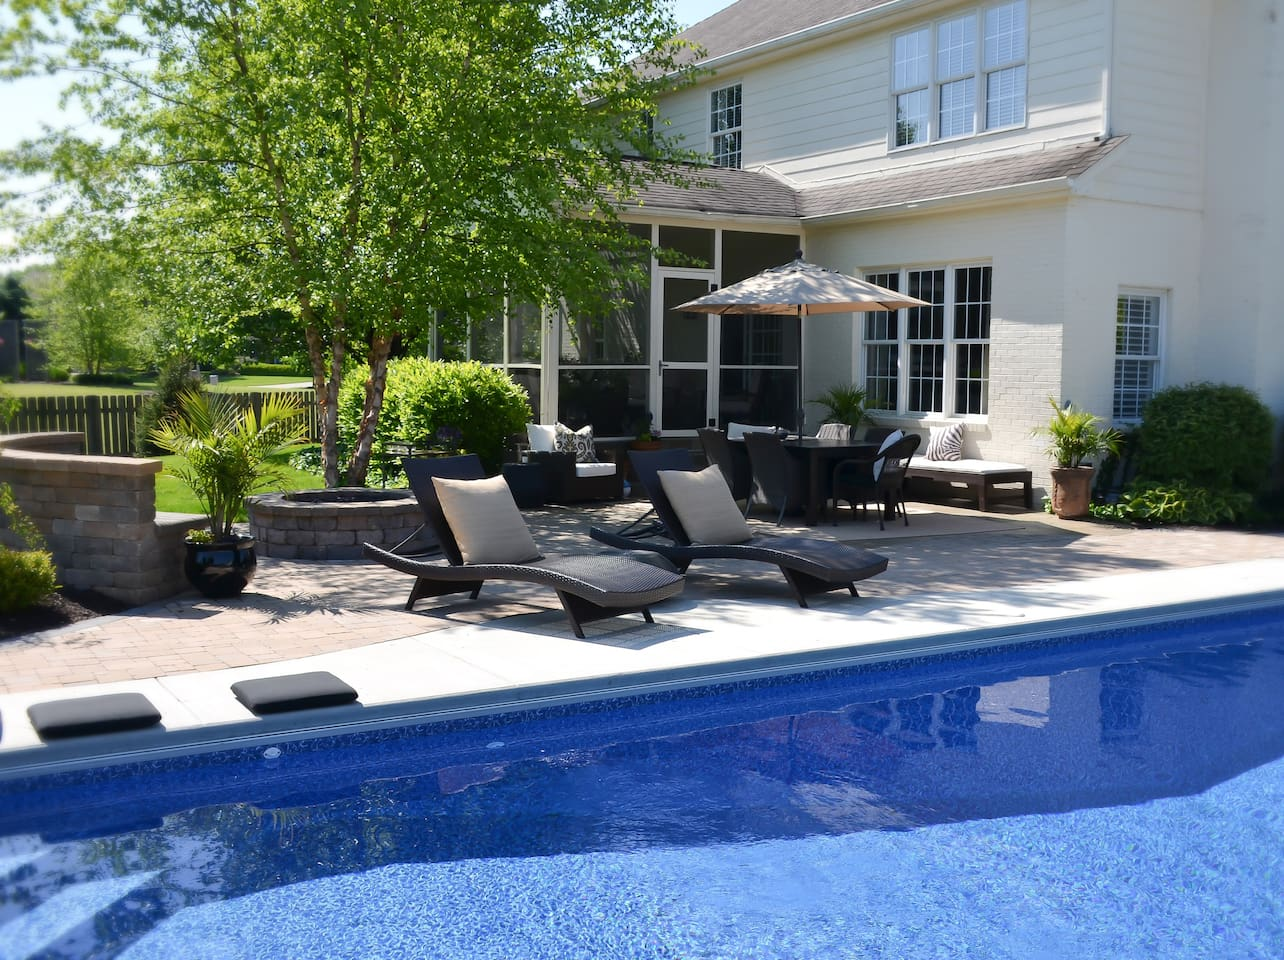 Pool and Firepit